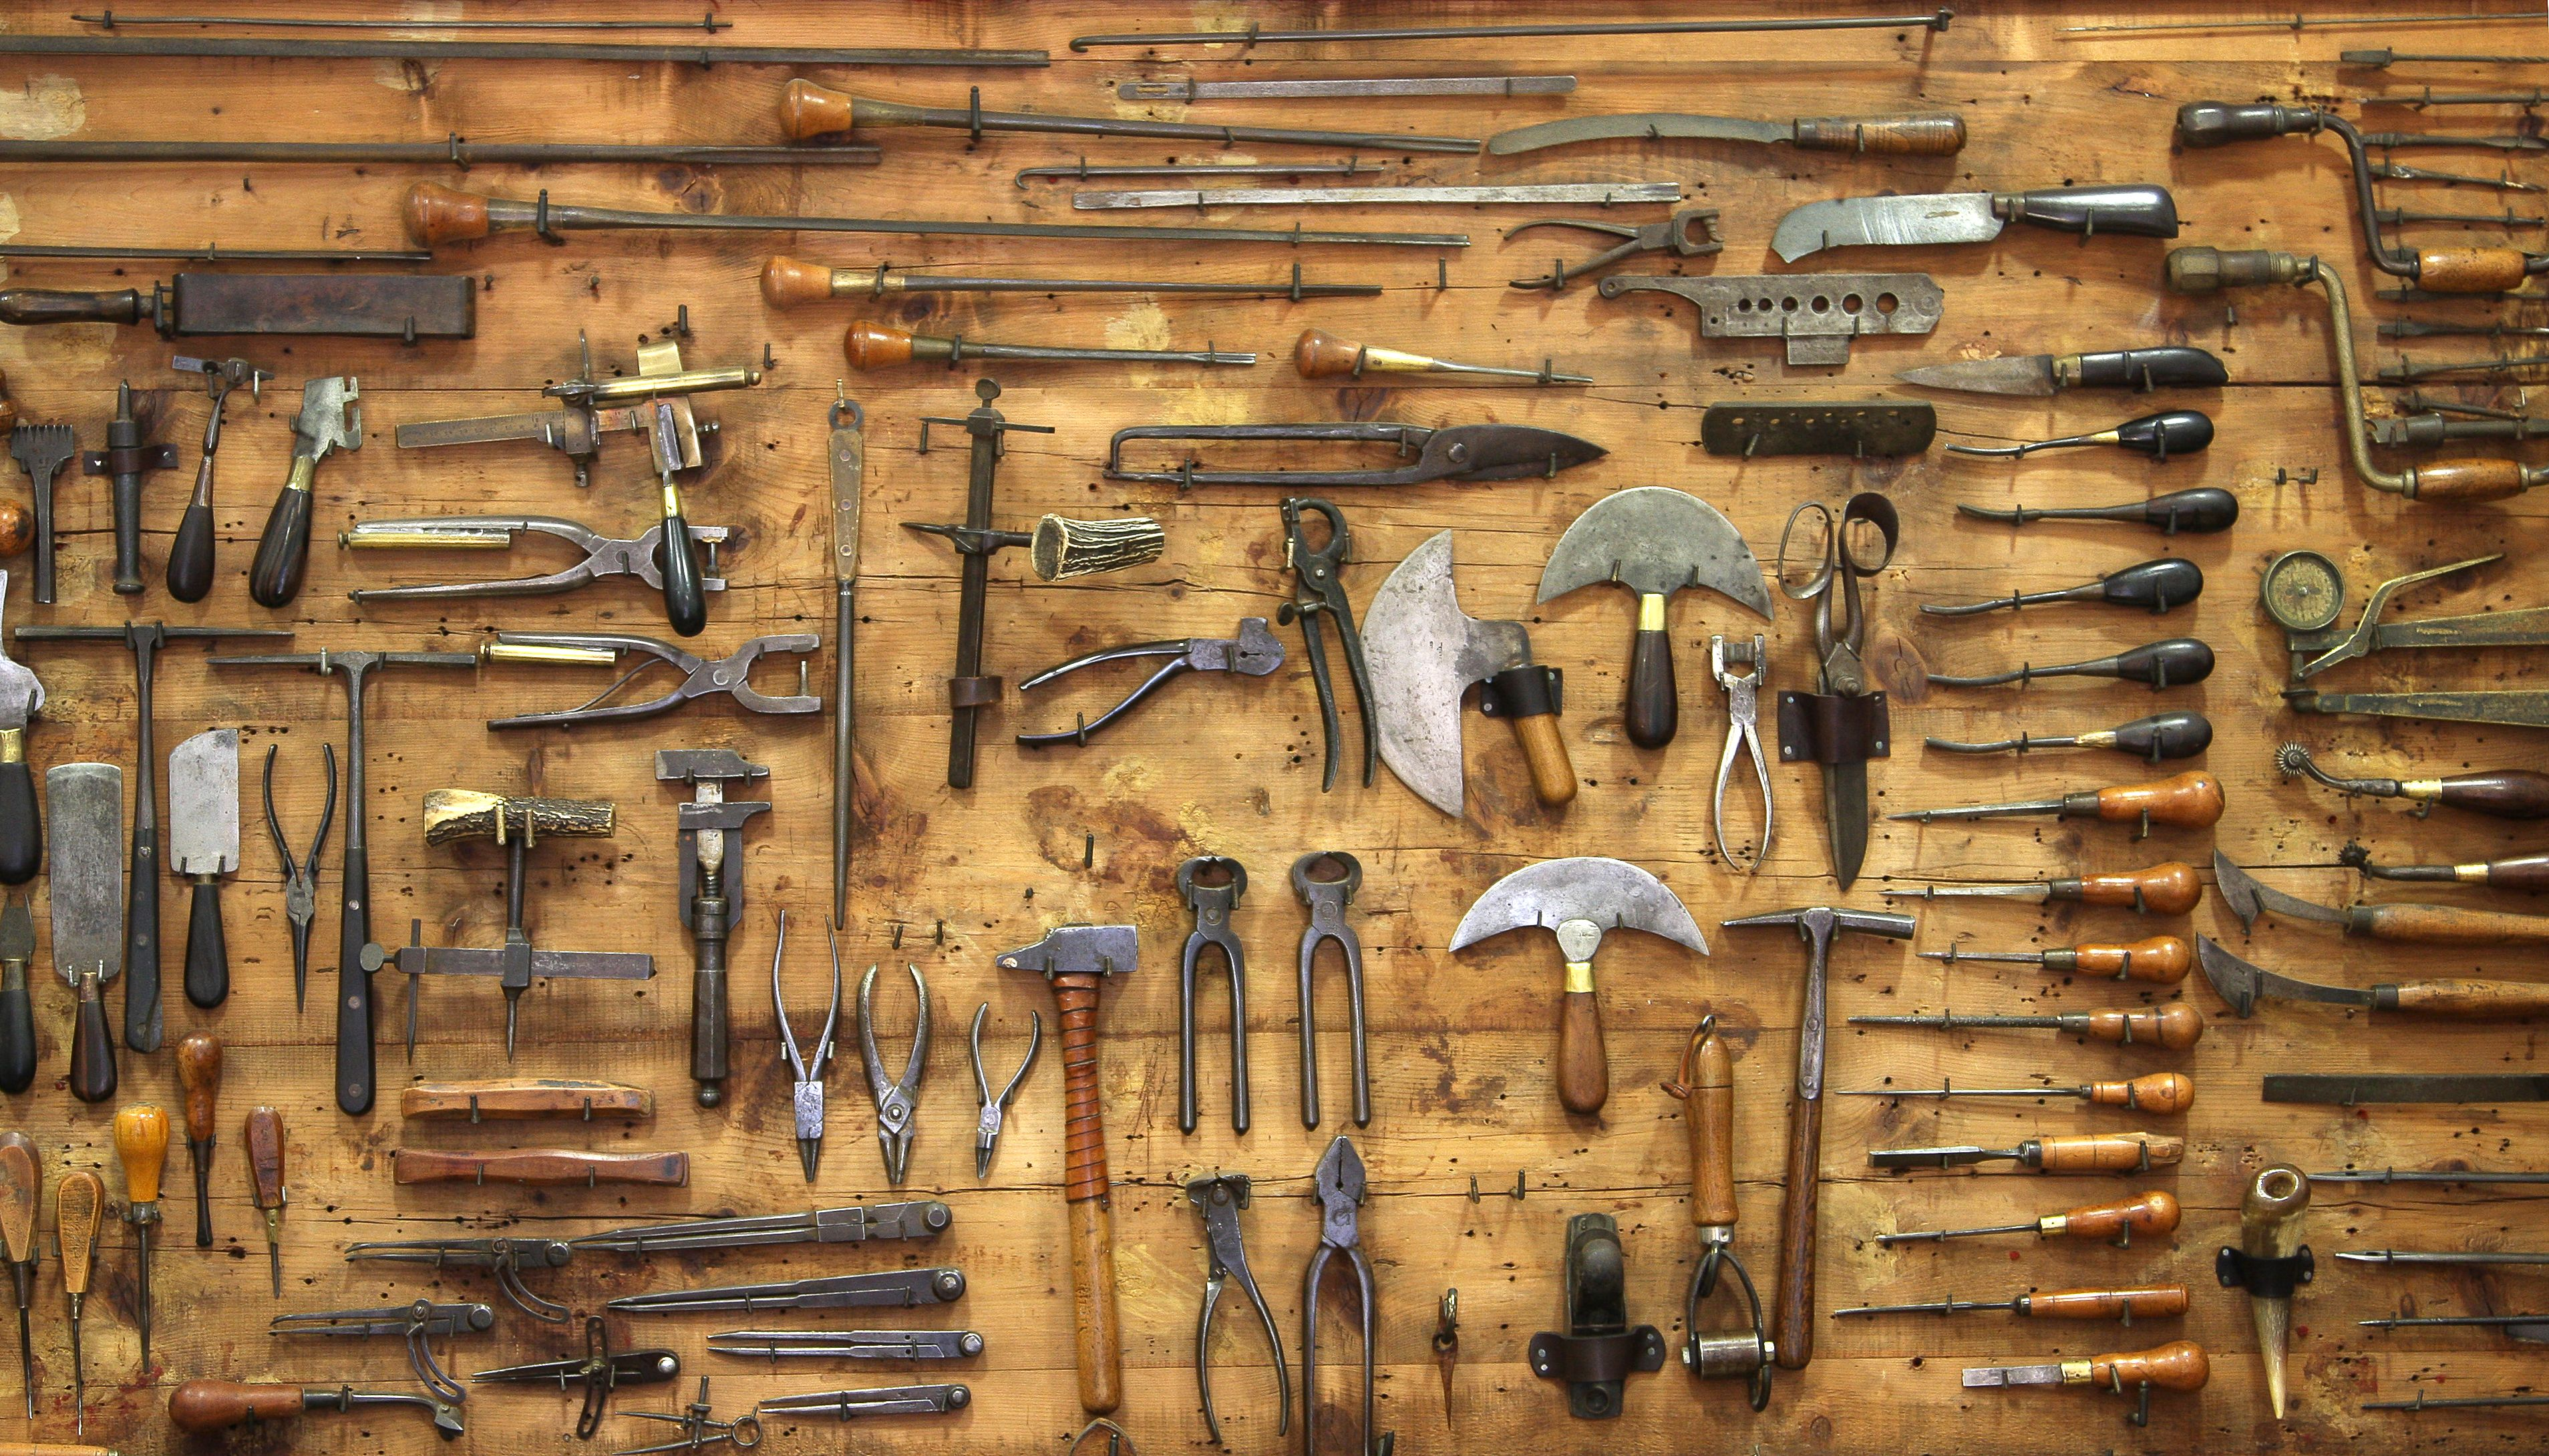 Download Wallpaper Wall Tools Etc Free Desktop Wallpaper In The Resolution 3816x2180 Picture 542084 Tool Artwork Old Tools Free Desktop Wallpaper